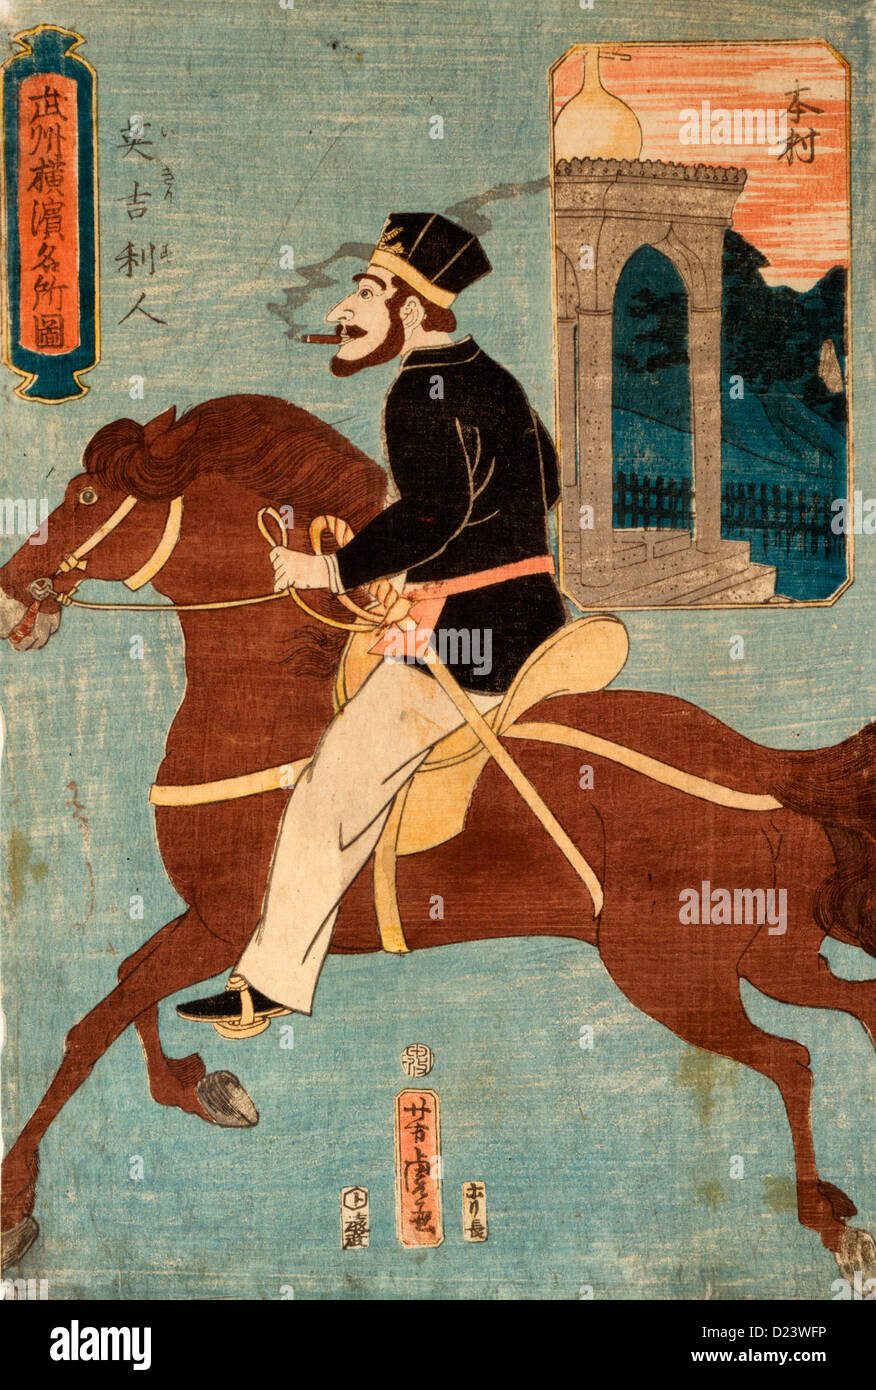 Japanese print shows an Englishman smoking a cigar or cigarette while horseback riding. Small illustration in the - Stock Image